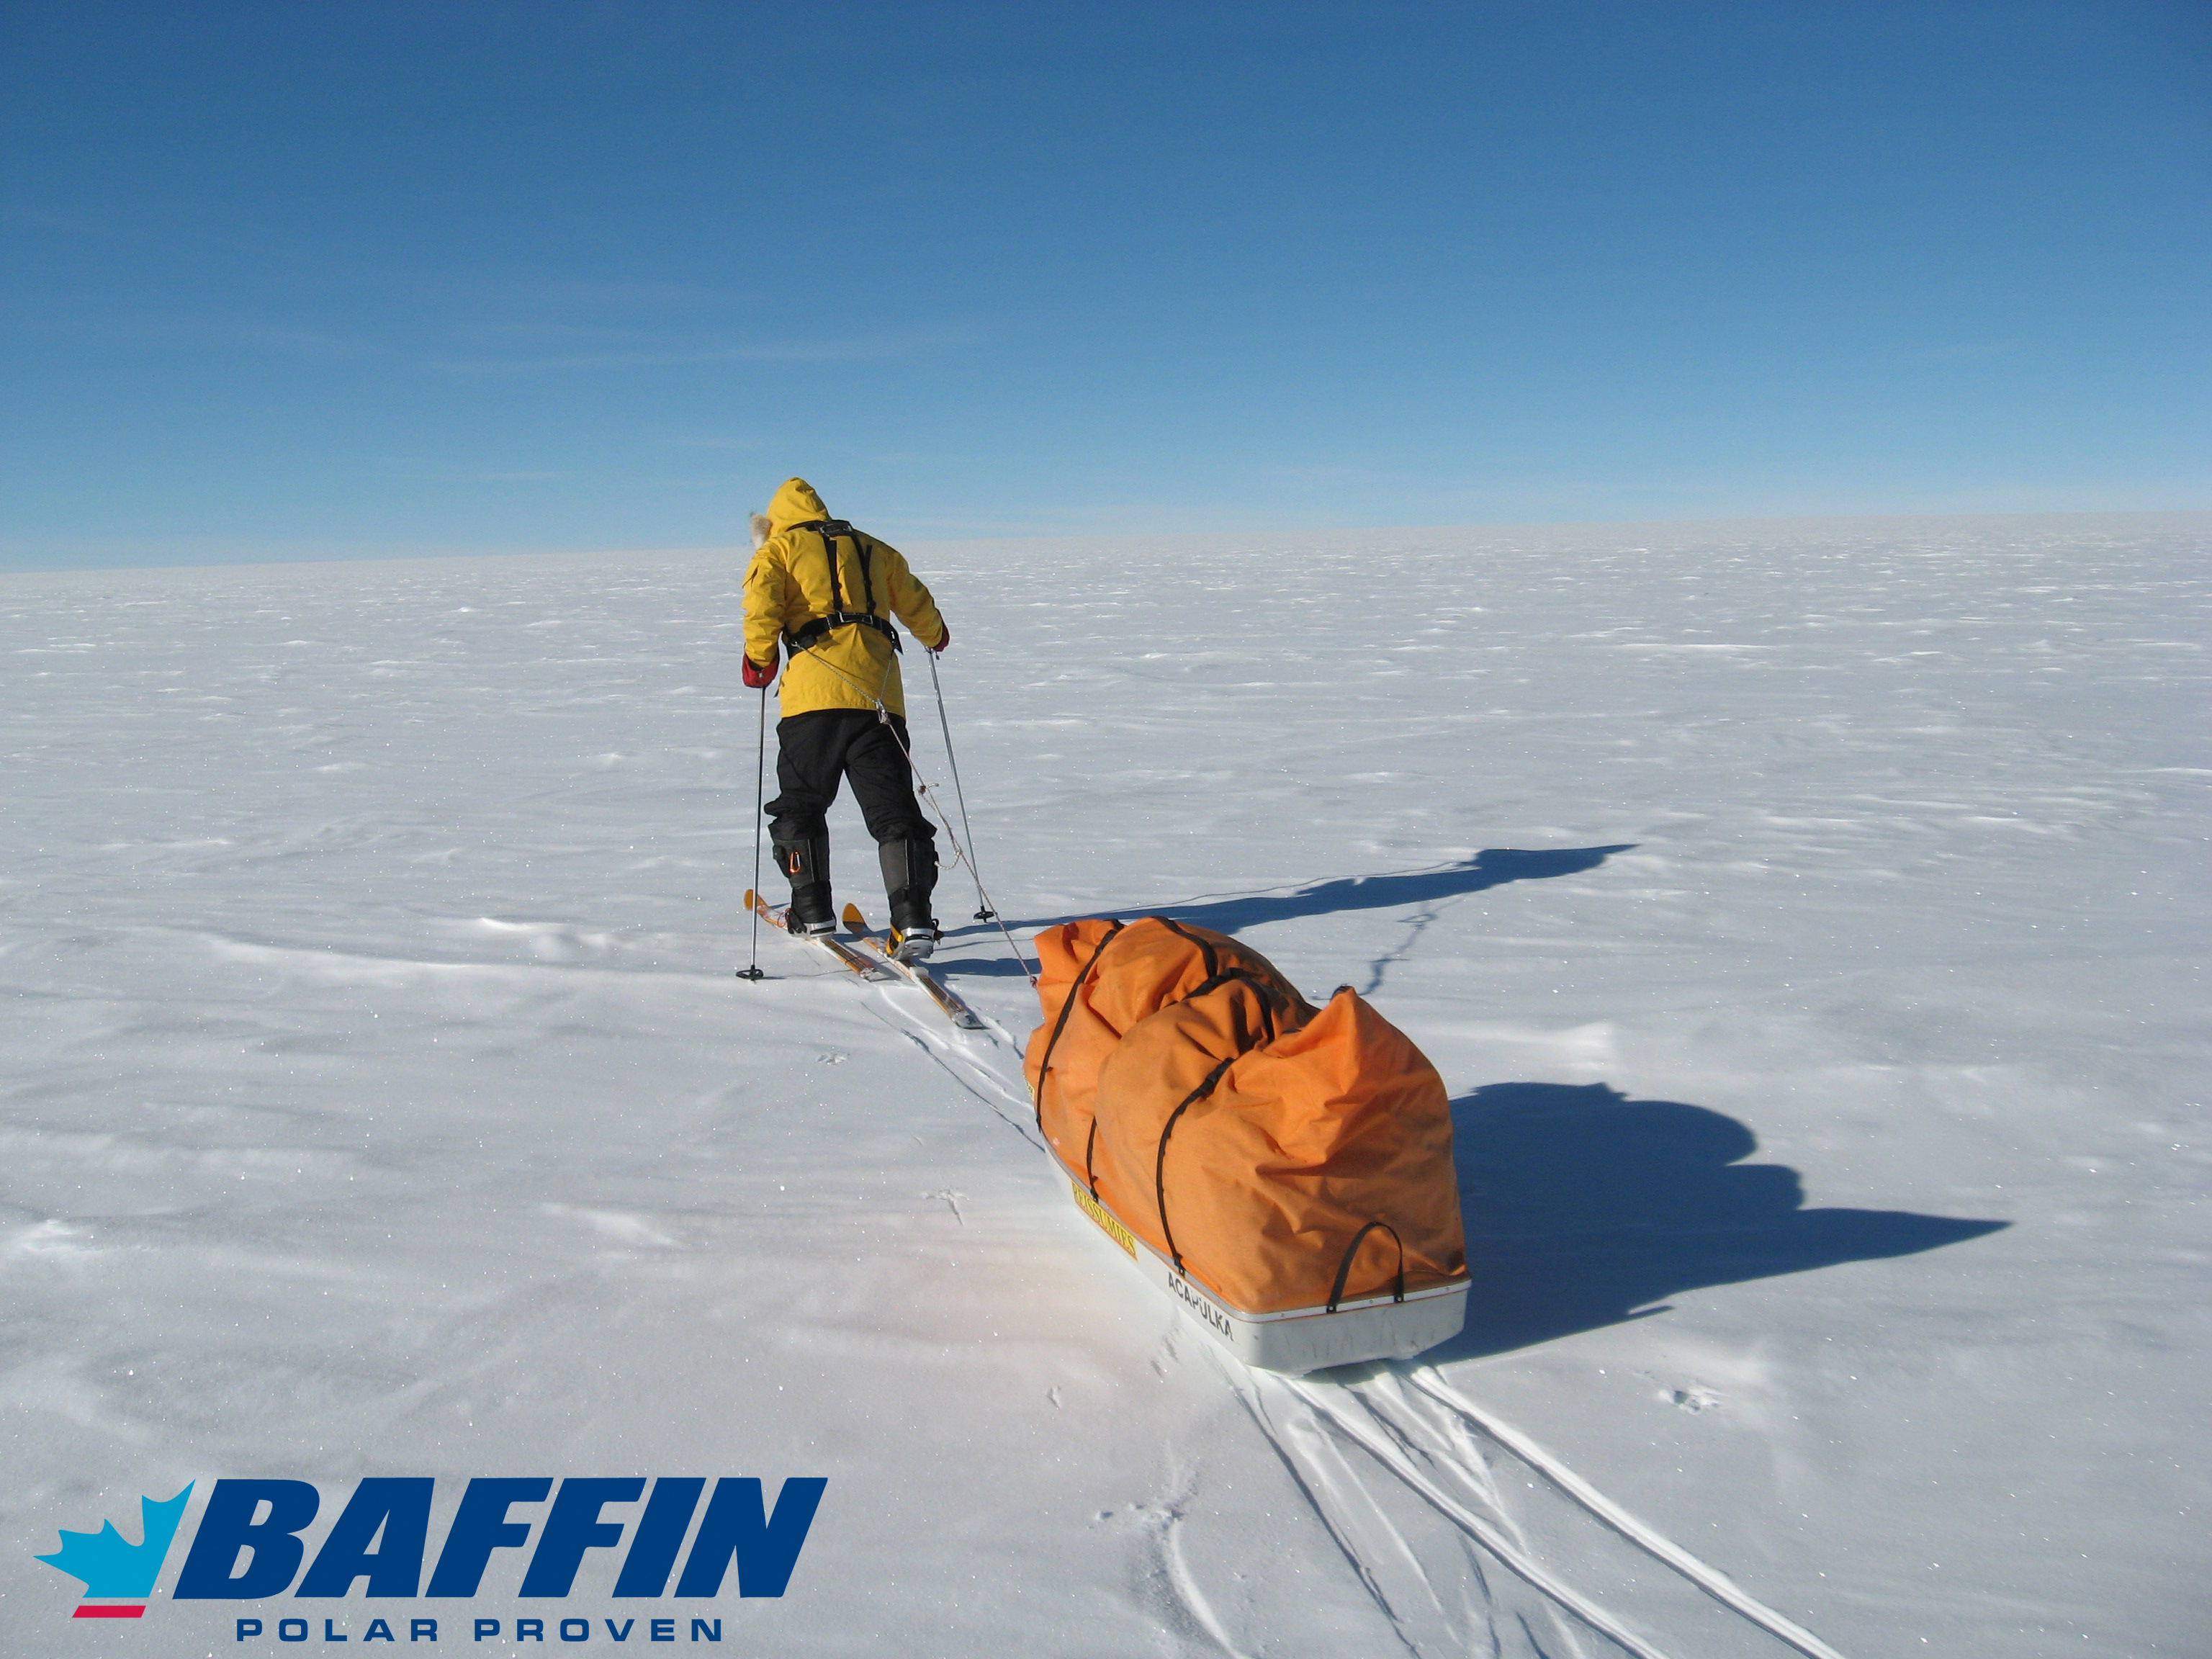 Canada's Baffin Outdoor Clothing & Footwear Brand